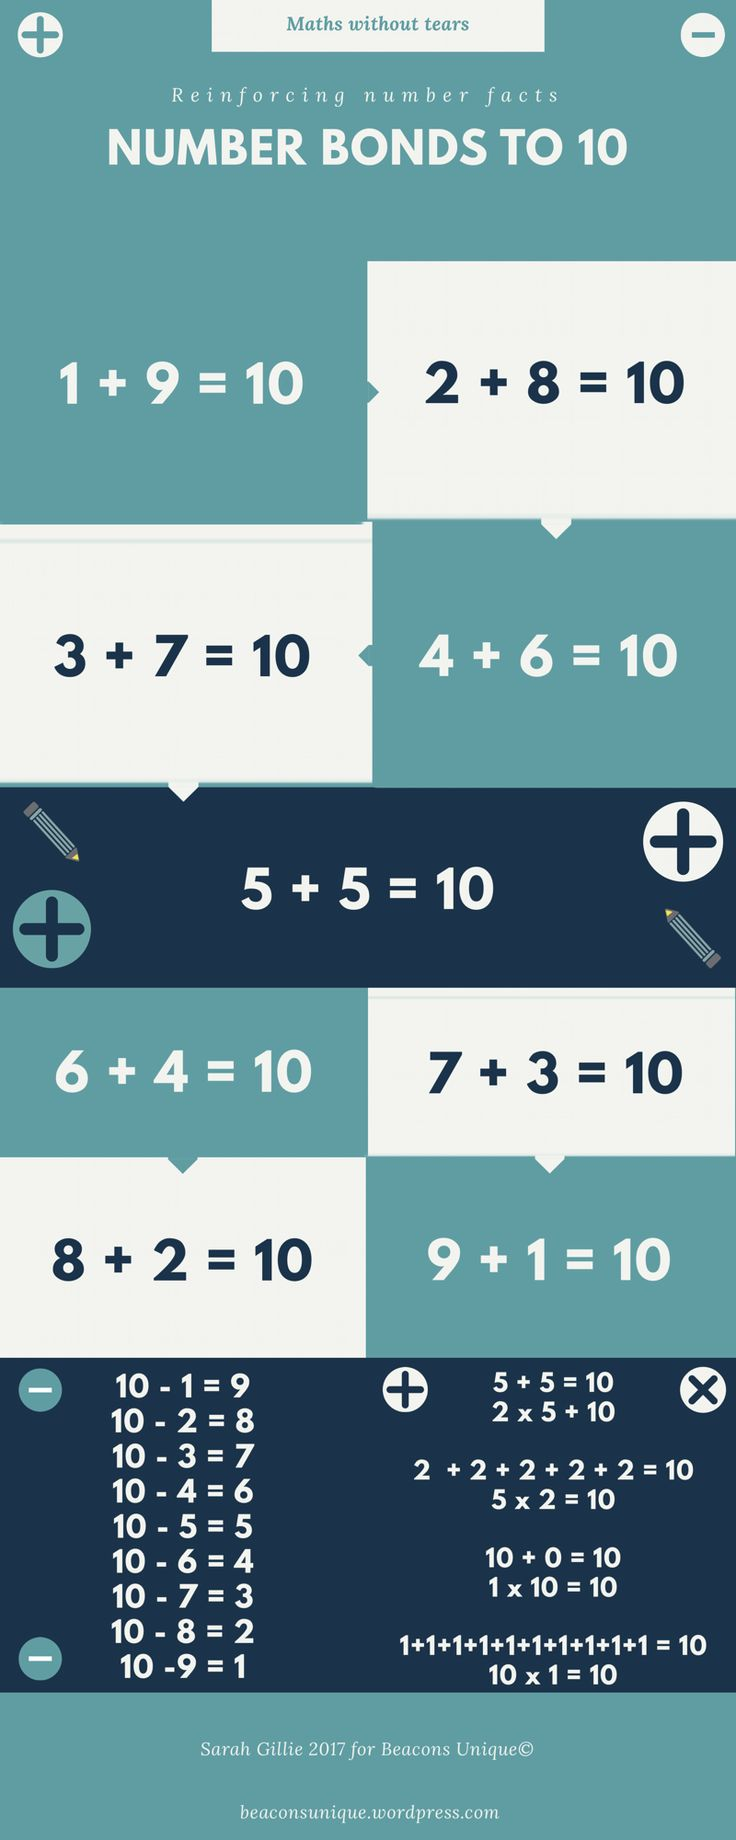 20 best Maths images on Pinterest